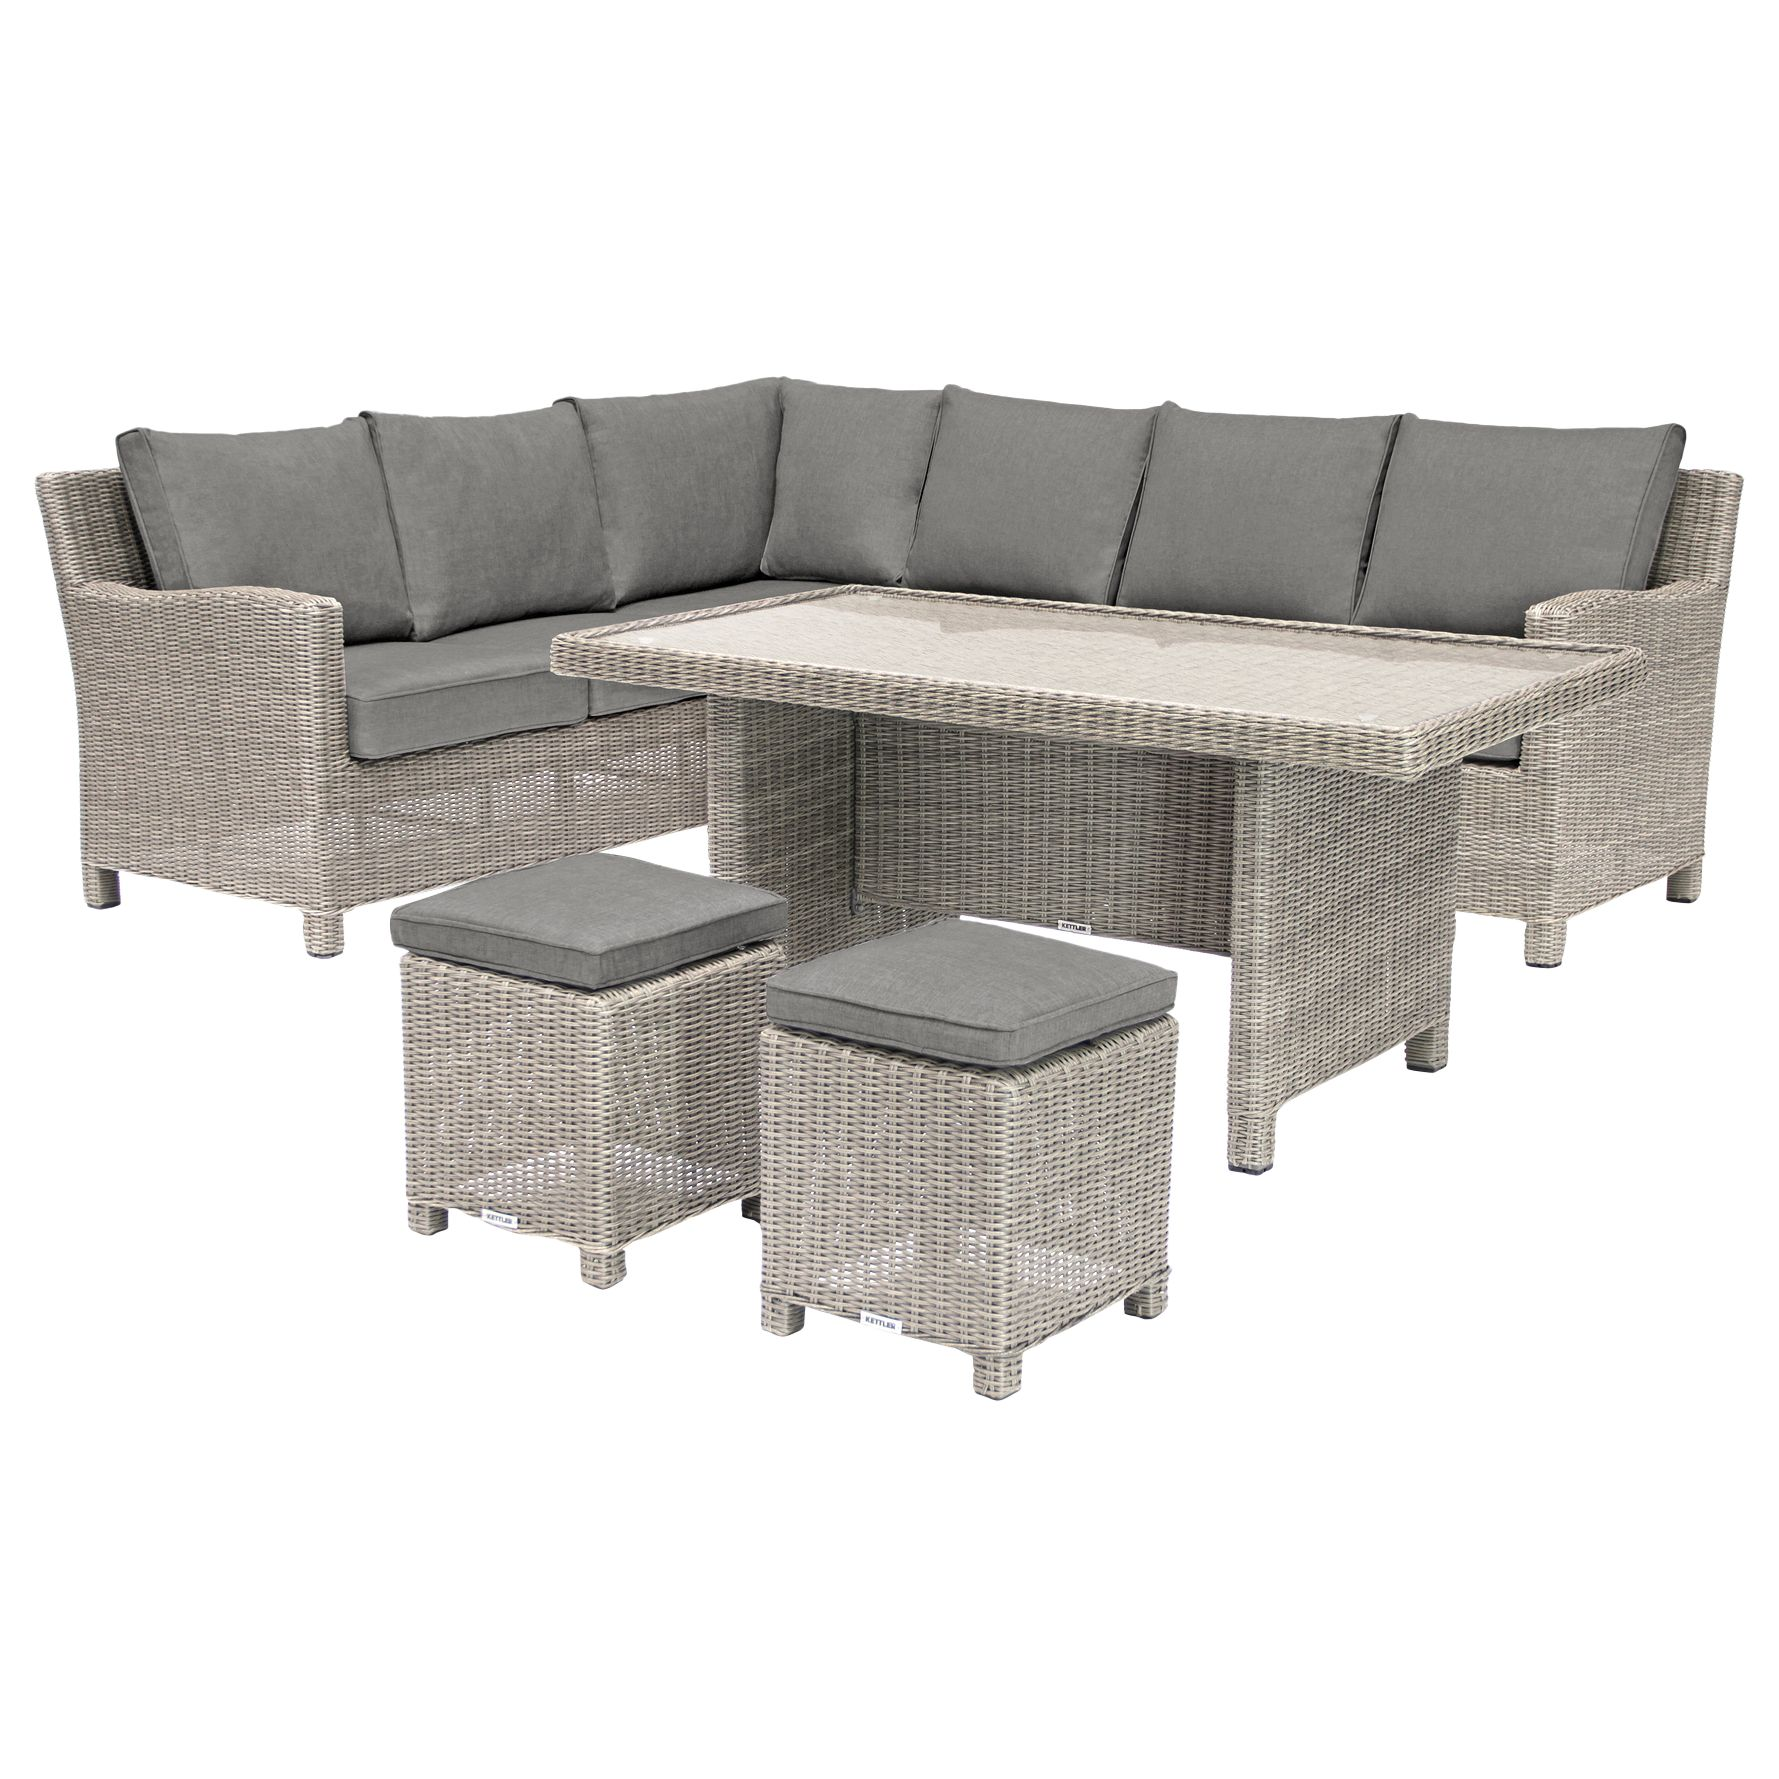 Kettler KETTLER Palma 8 Seater Garden Corner Set With Glass Top Table